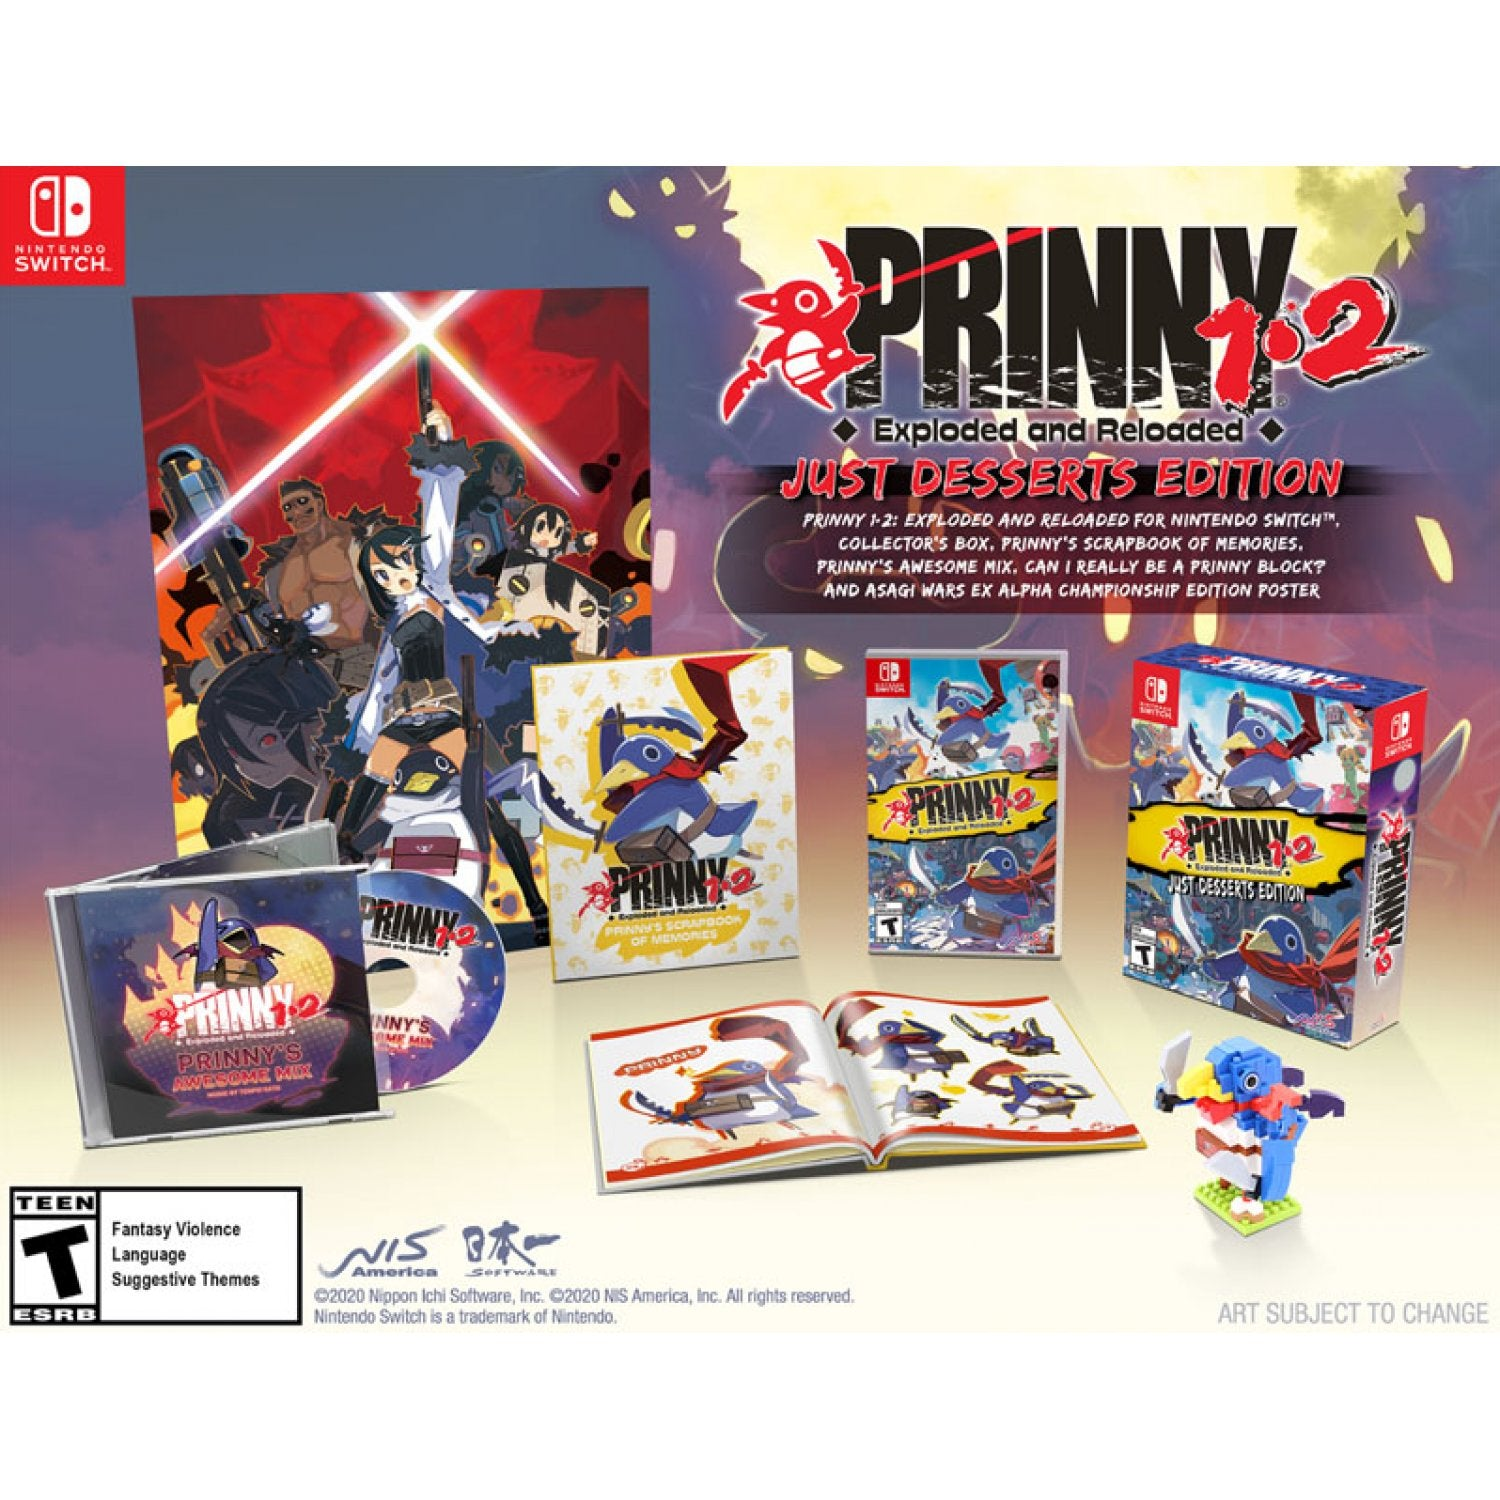 Nintendo Switch Prinny 1-2: Exploded and Reloaded [Just Desserts Edition]